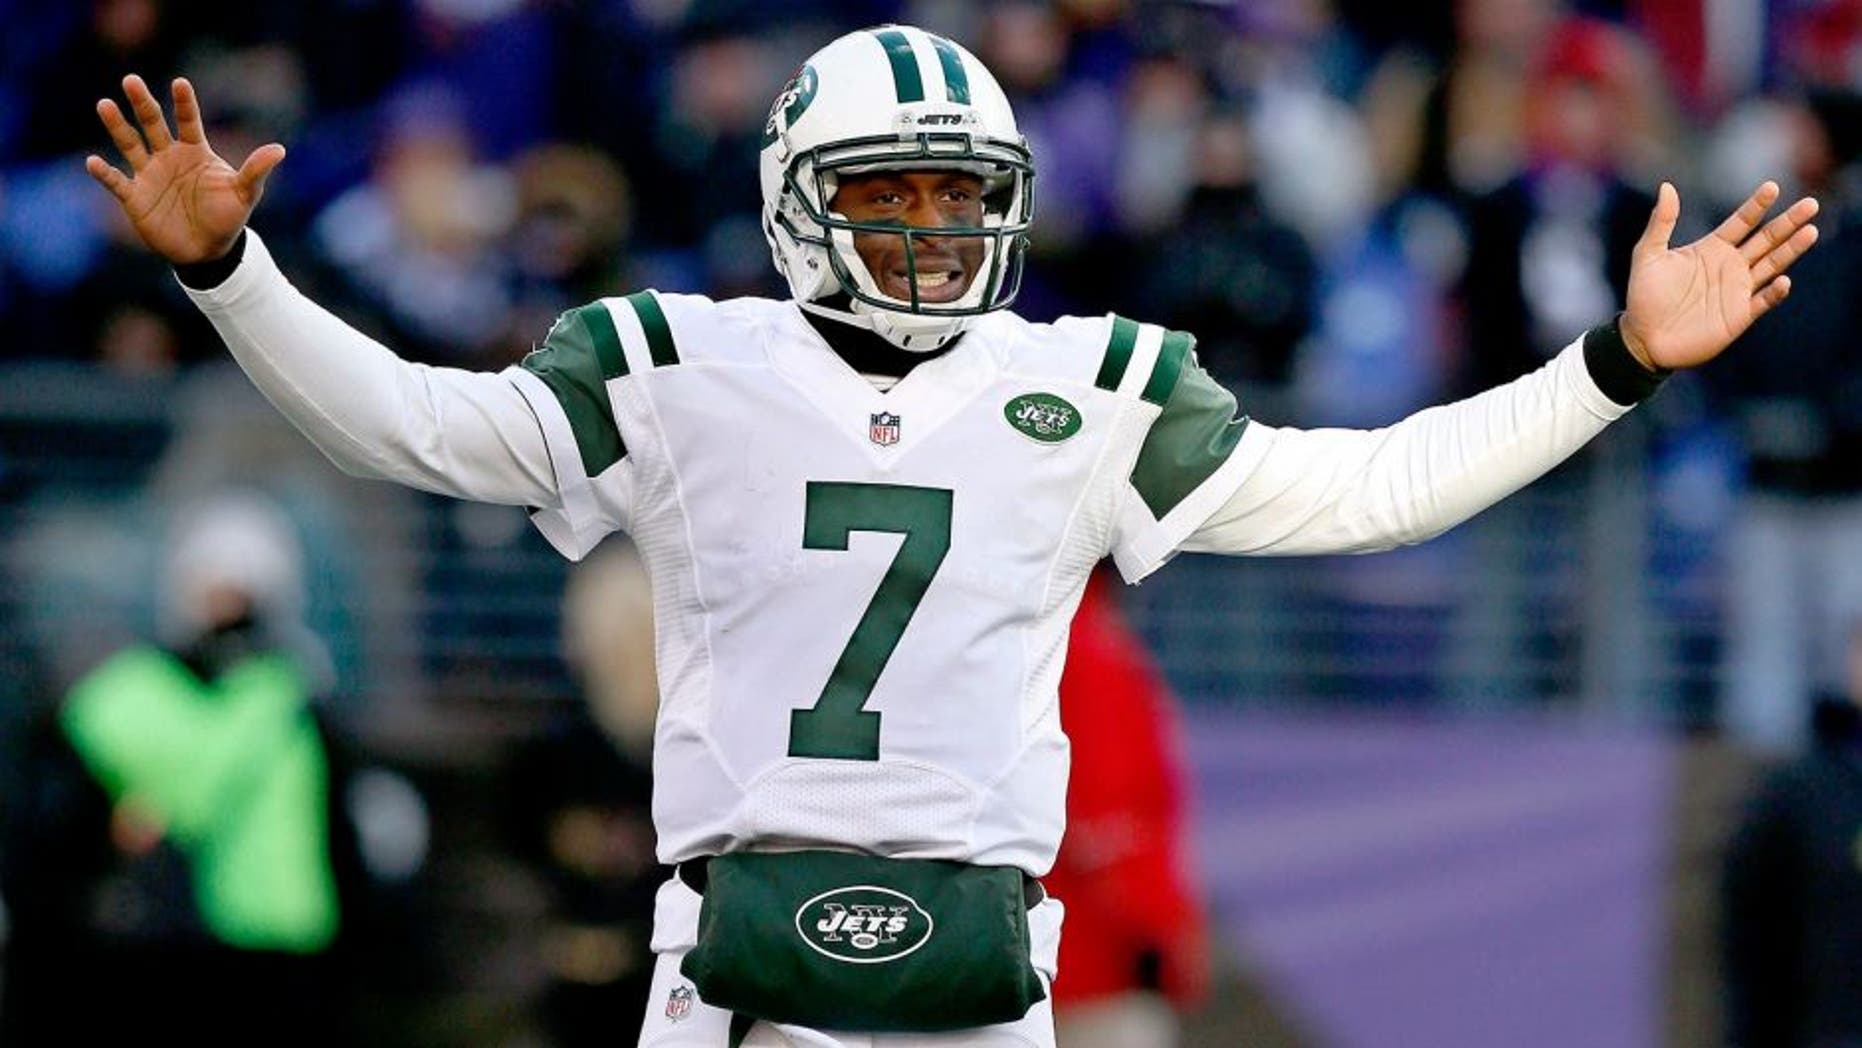 Nov 24, 2013; Baltimore, MD, USA; New York Jets quarterback Geno Smith (7) reacts in the fourth quarter against the Baltimore Ravens at M&T Bank Stadium. Mandatory Credit: Mitch Stringer-USA TODAY Sports